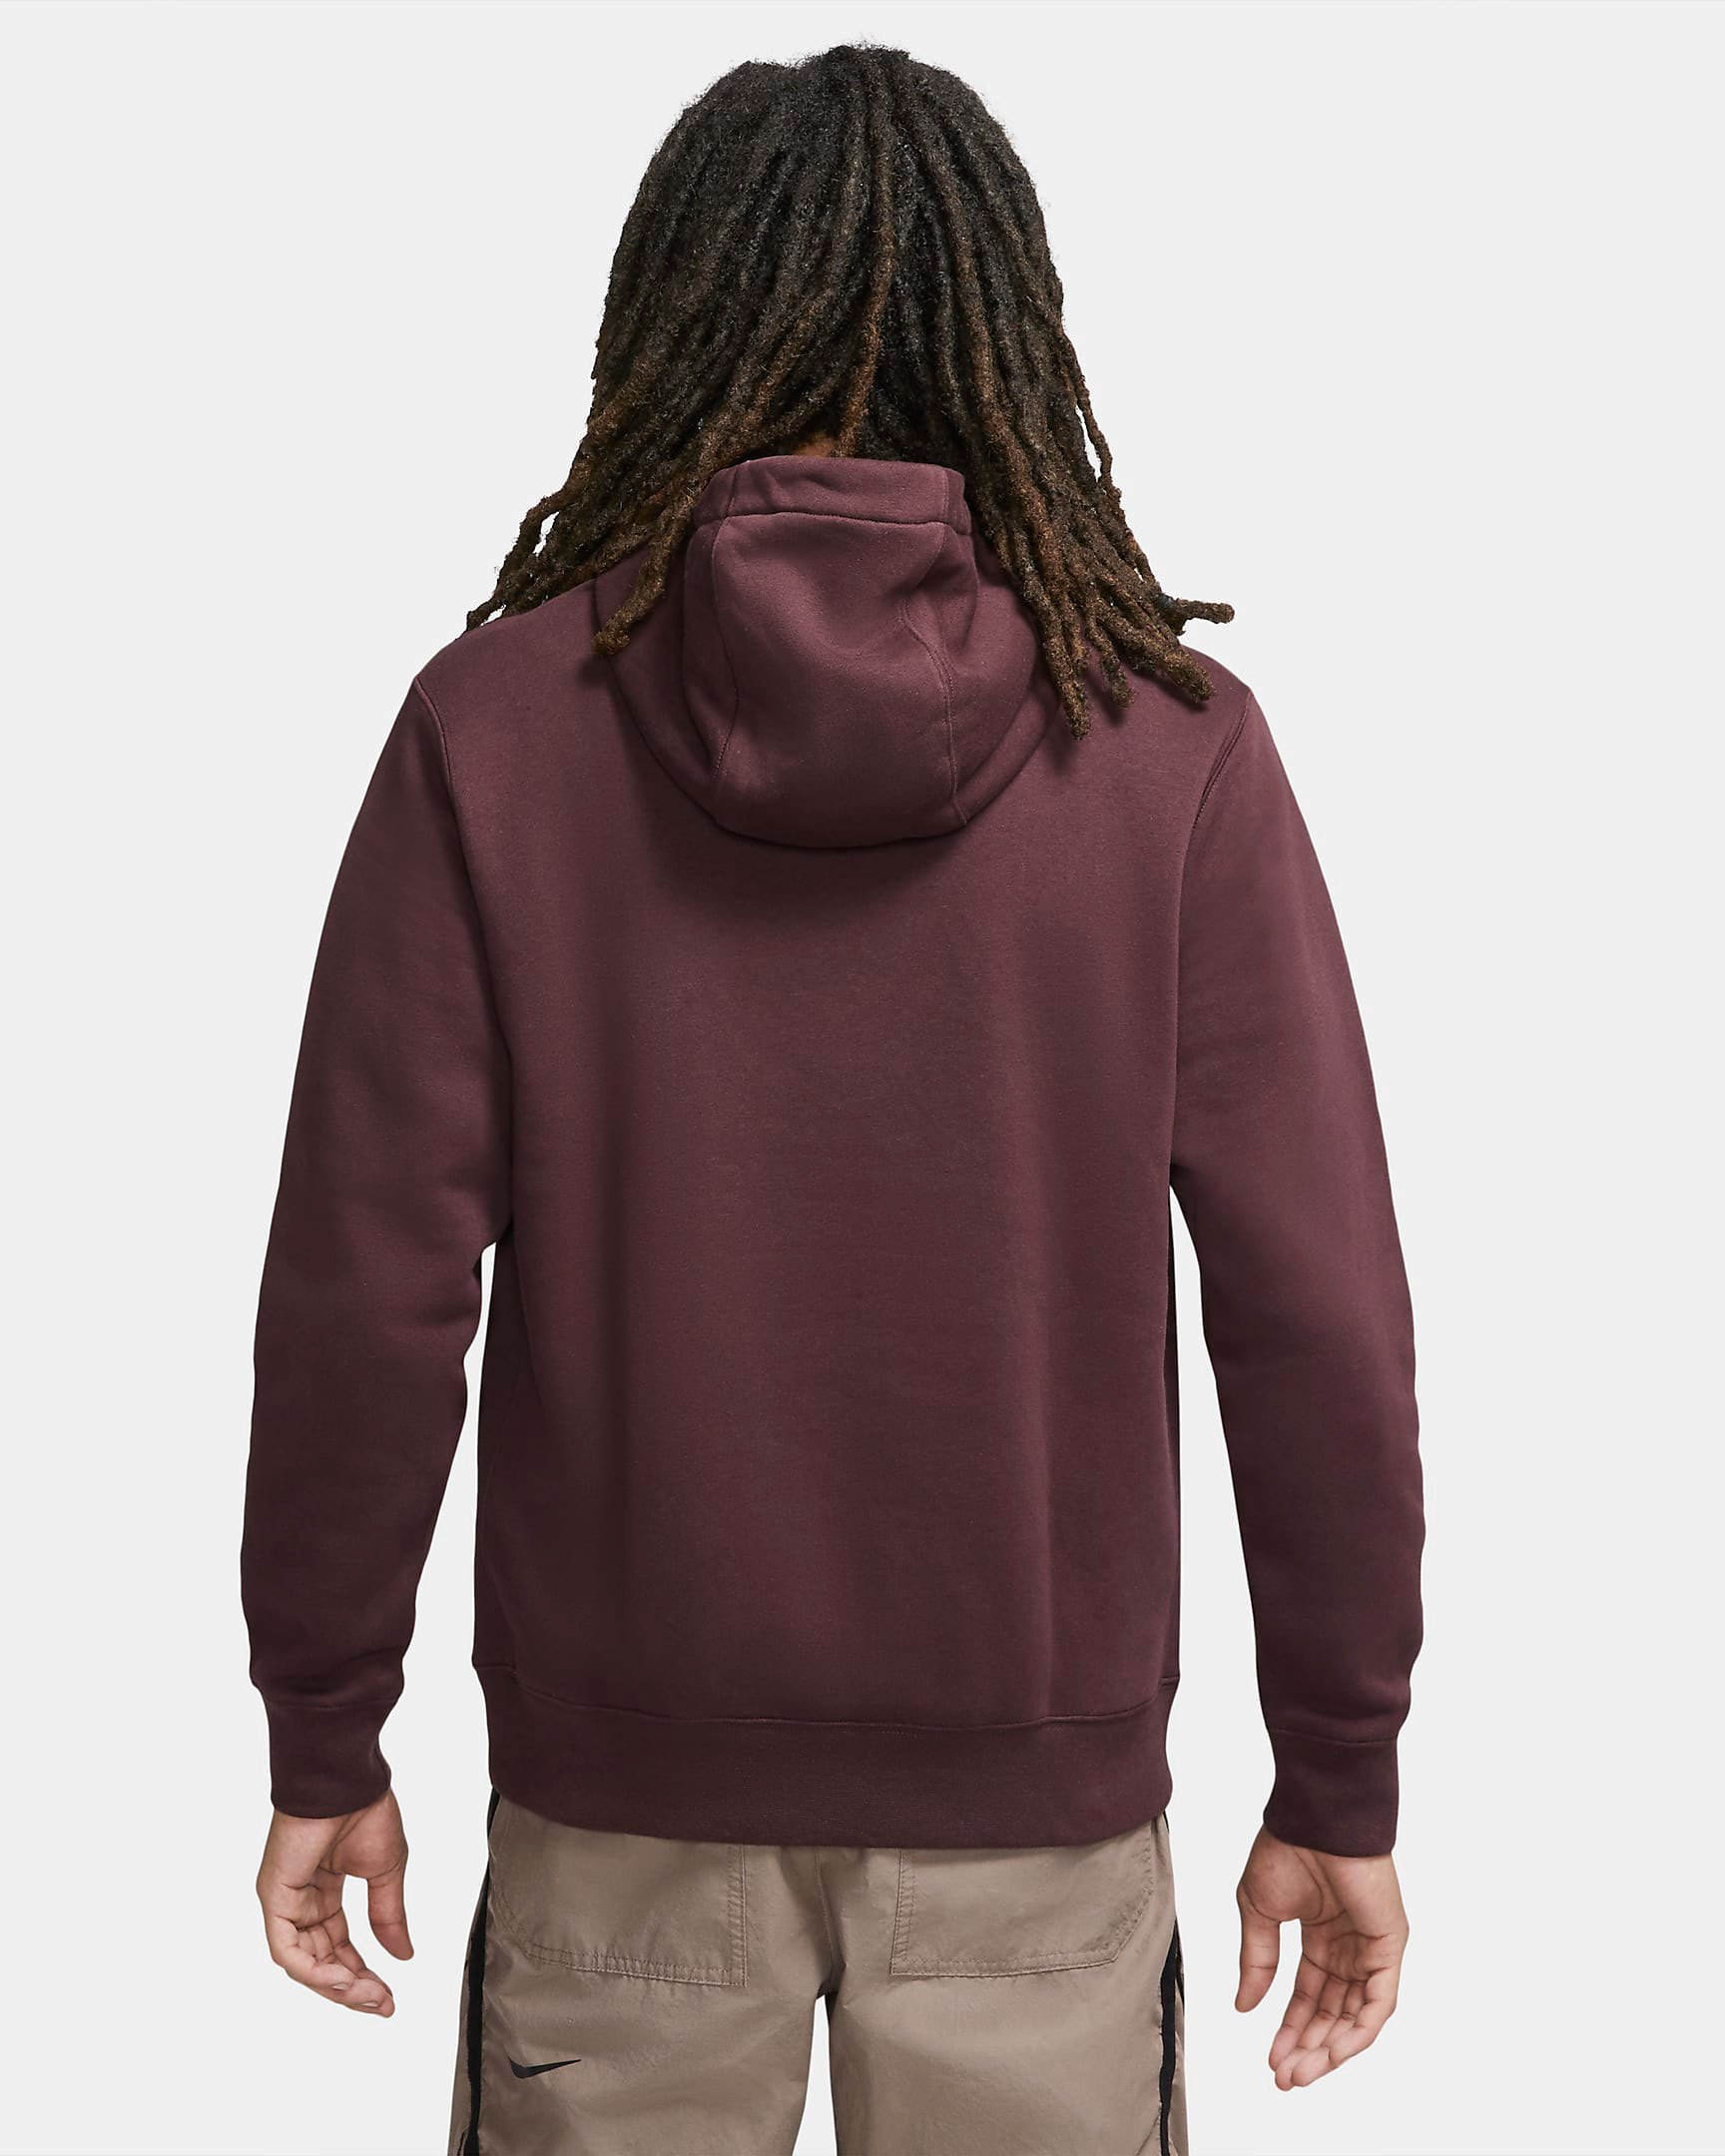 nike-club-fleece-hoodie-mahogany-brown-4